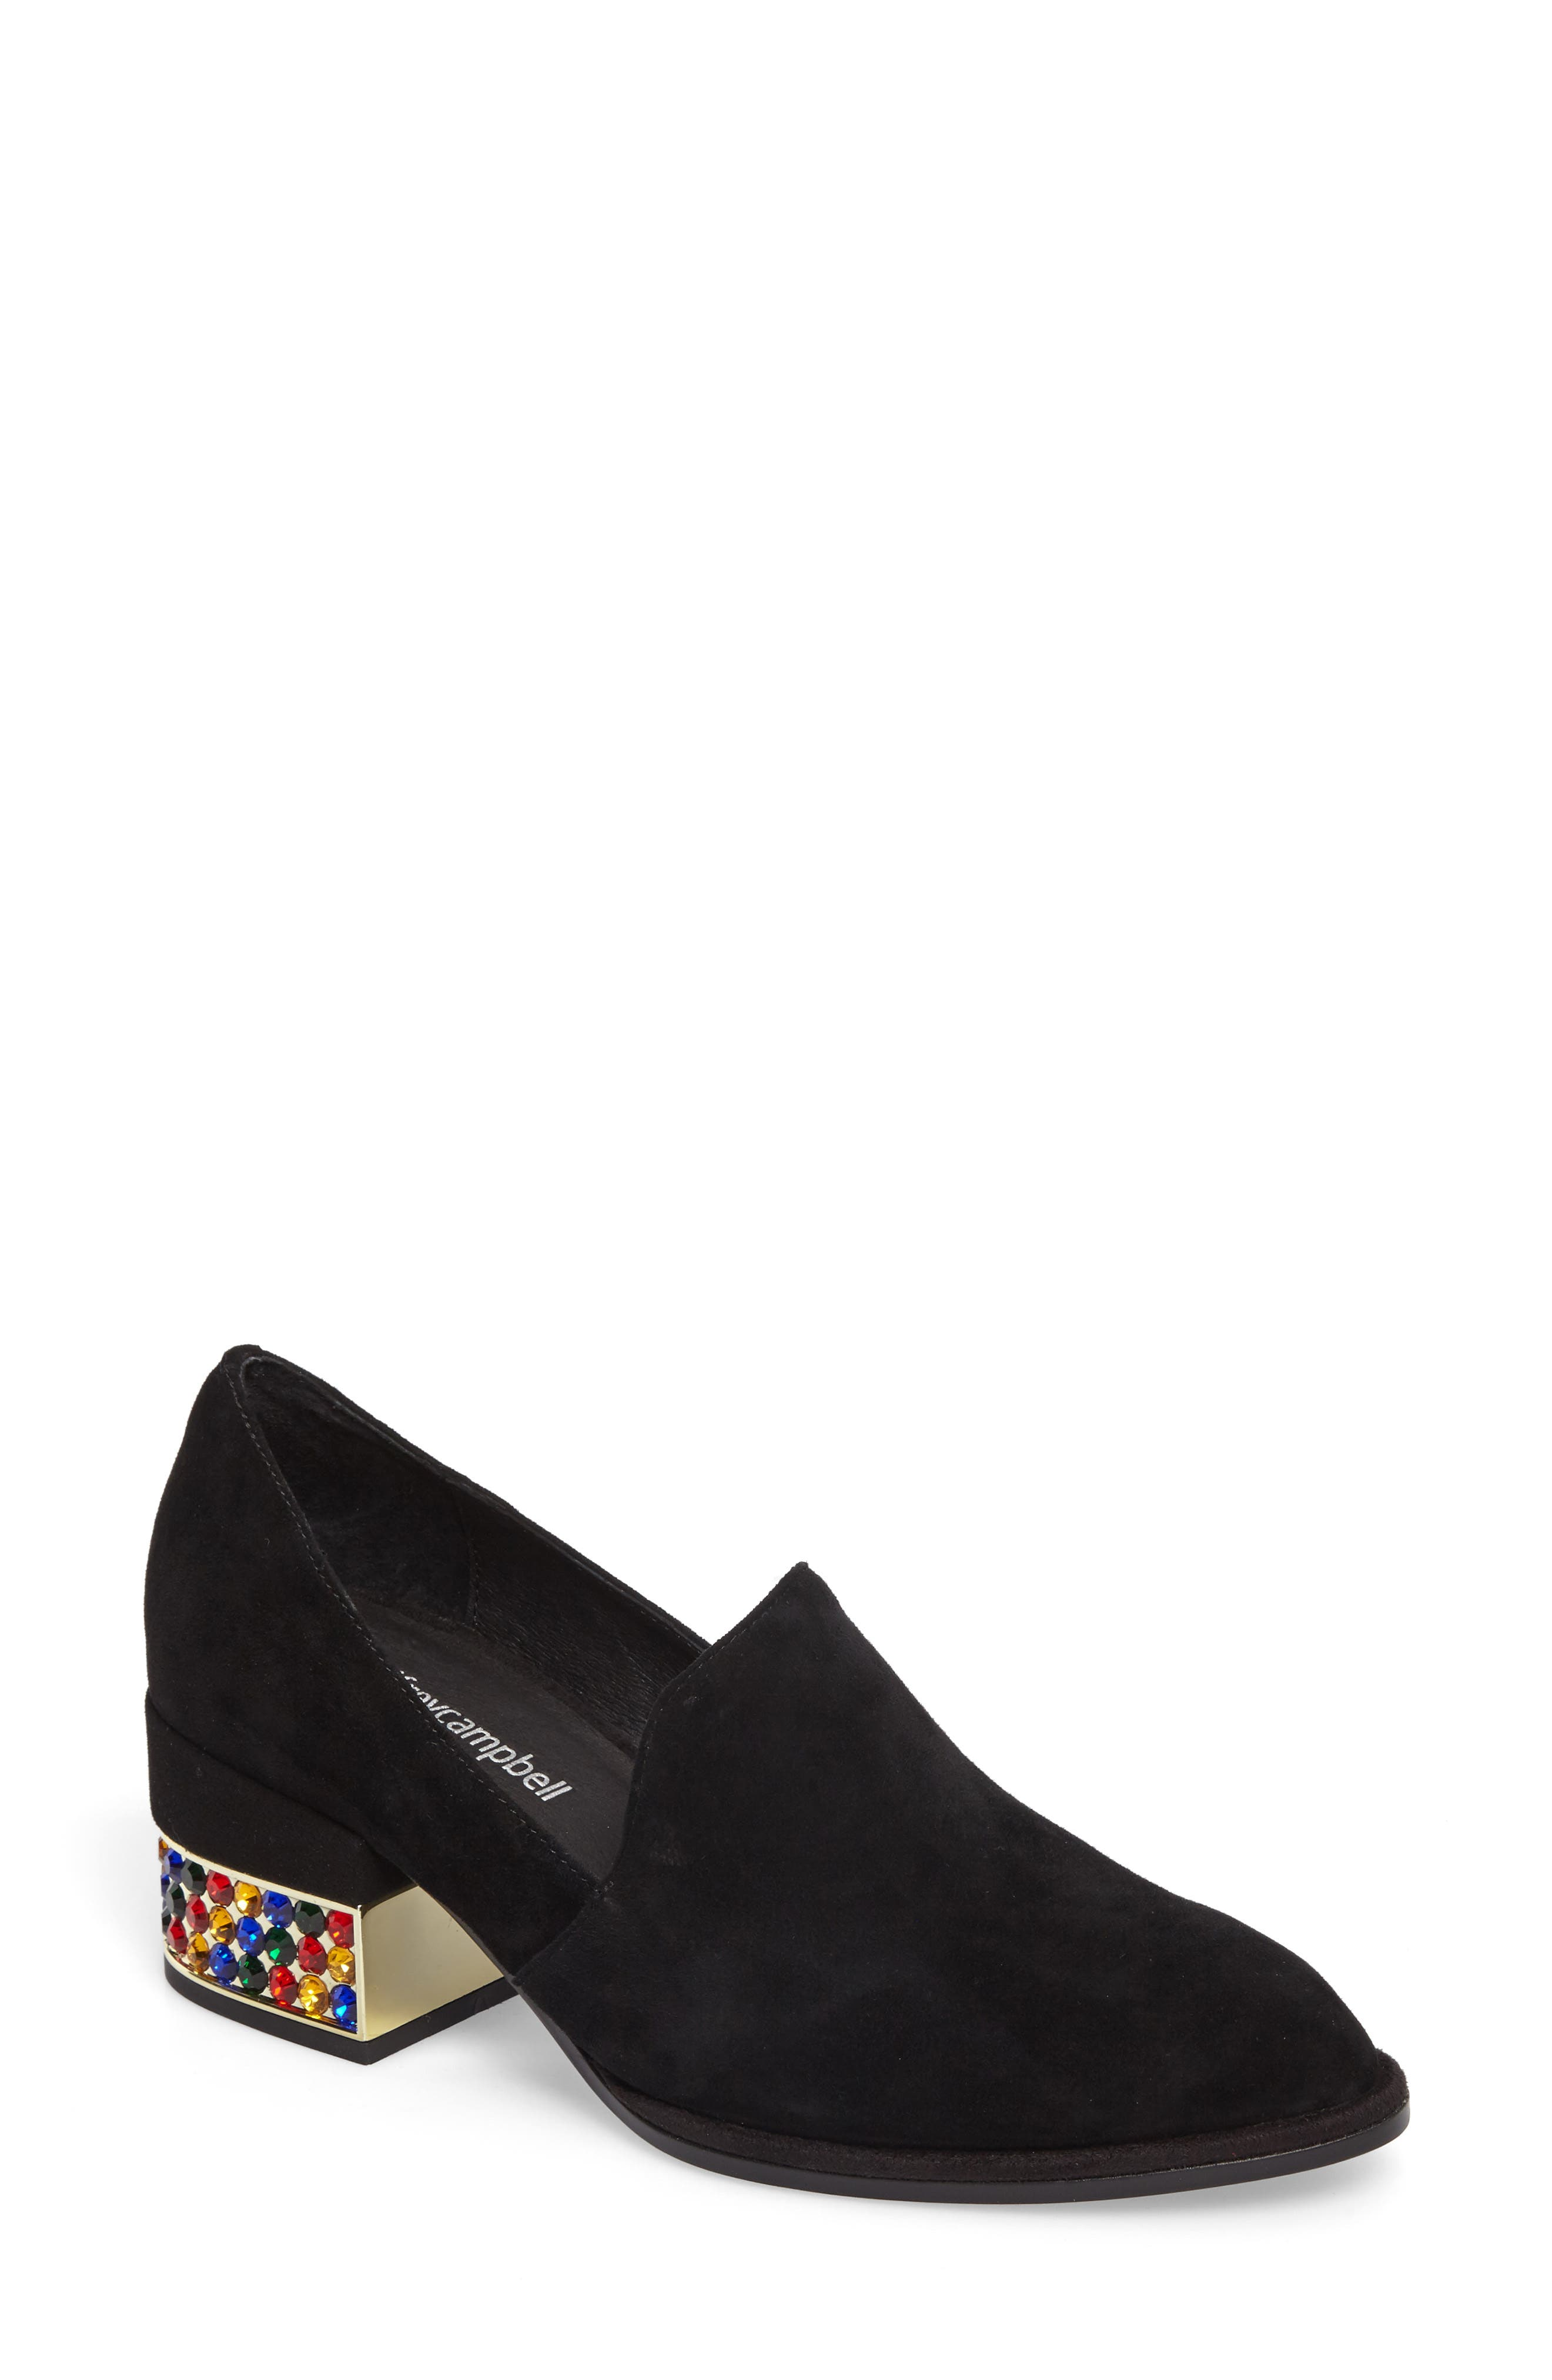 Serlin Jeweled Heel Loafer,                             Main thumbnail 1, color,                             004